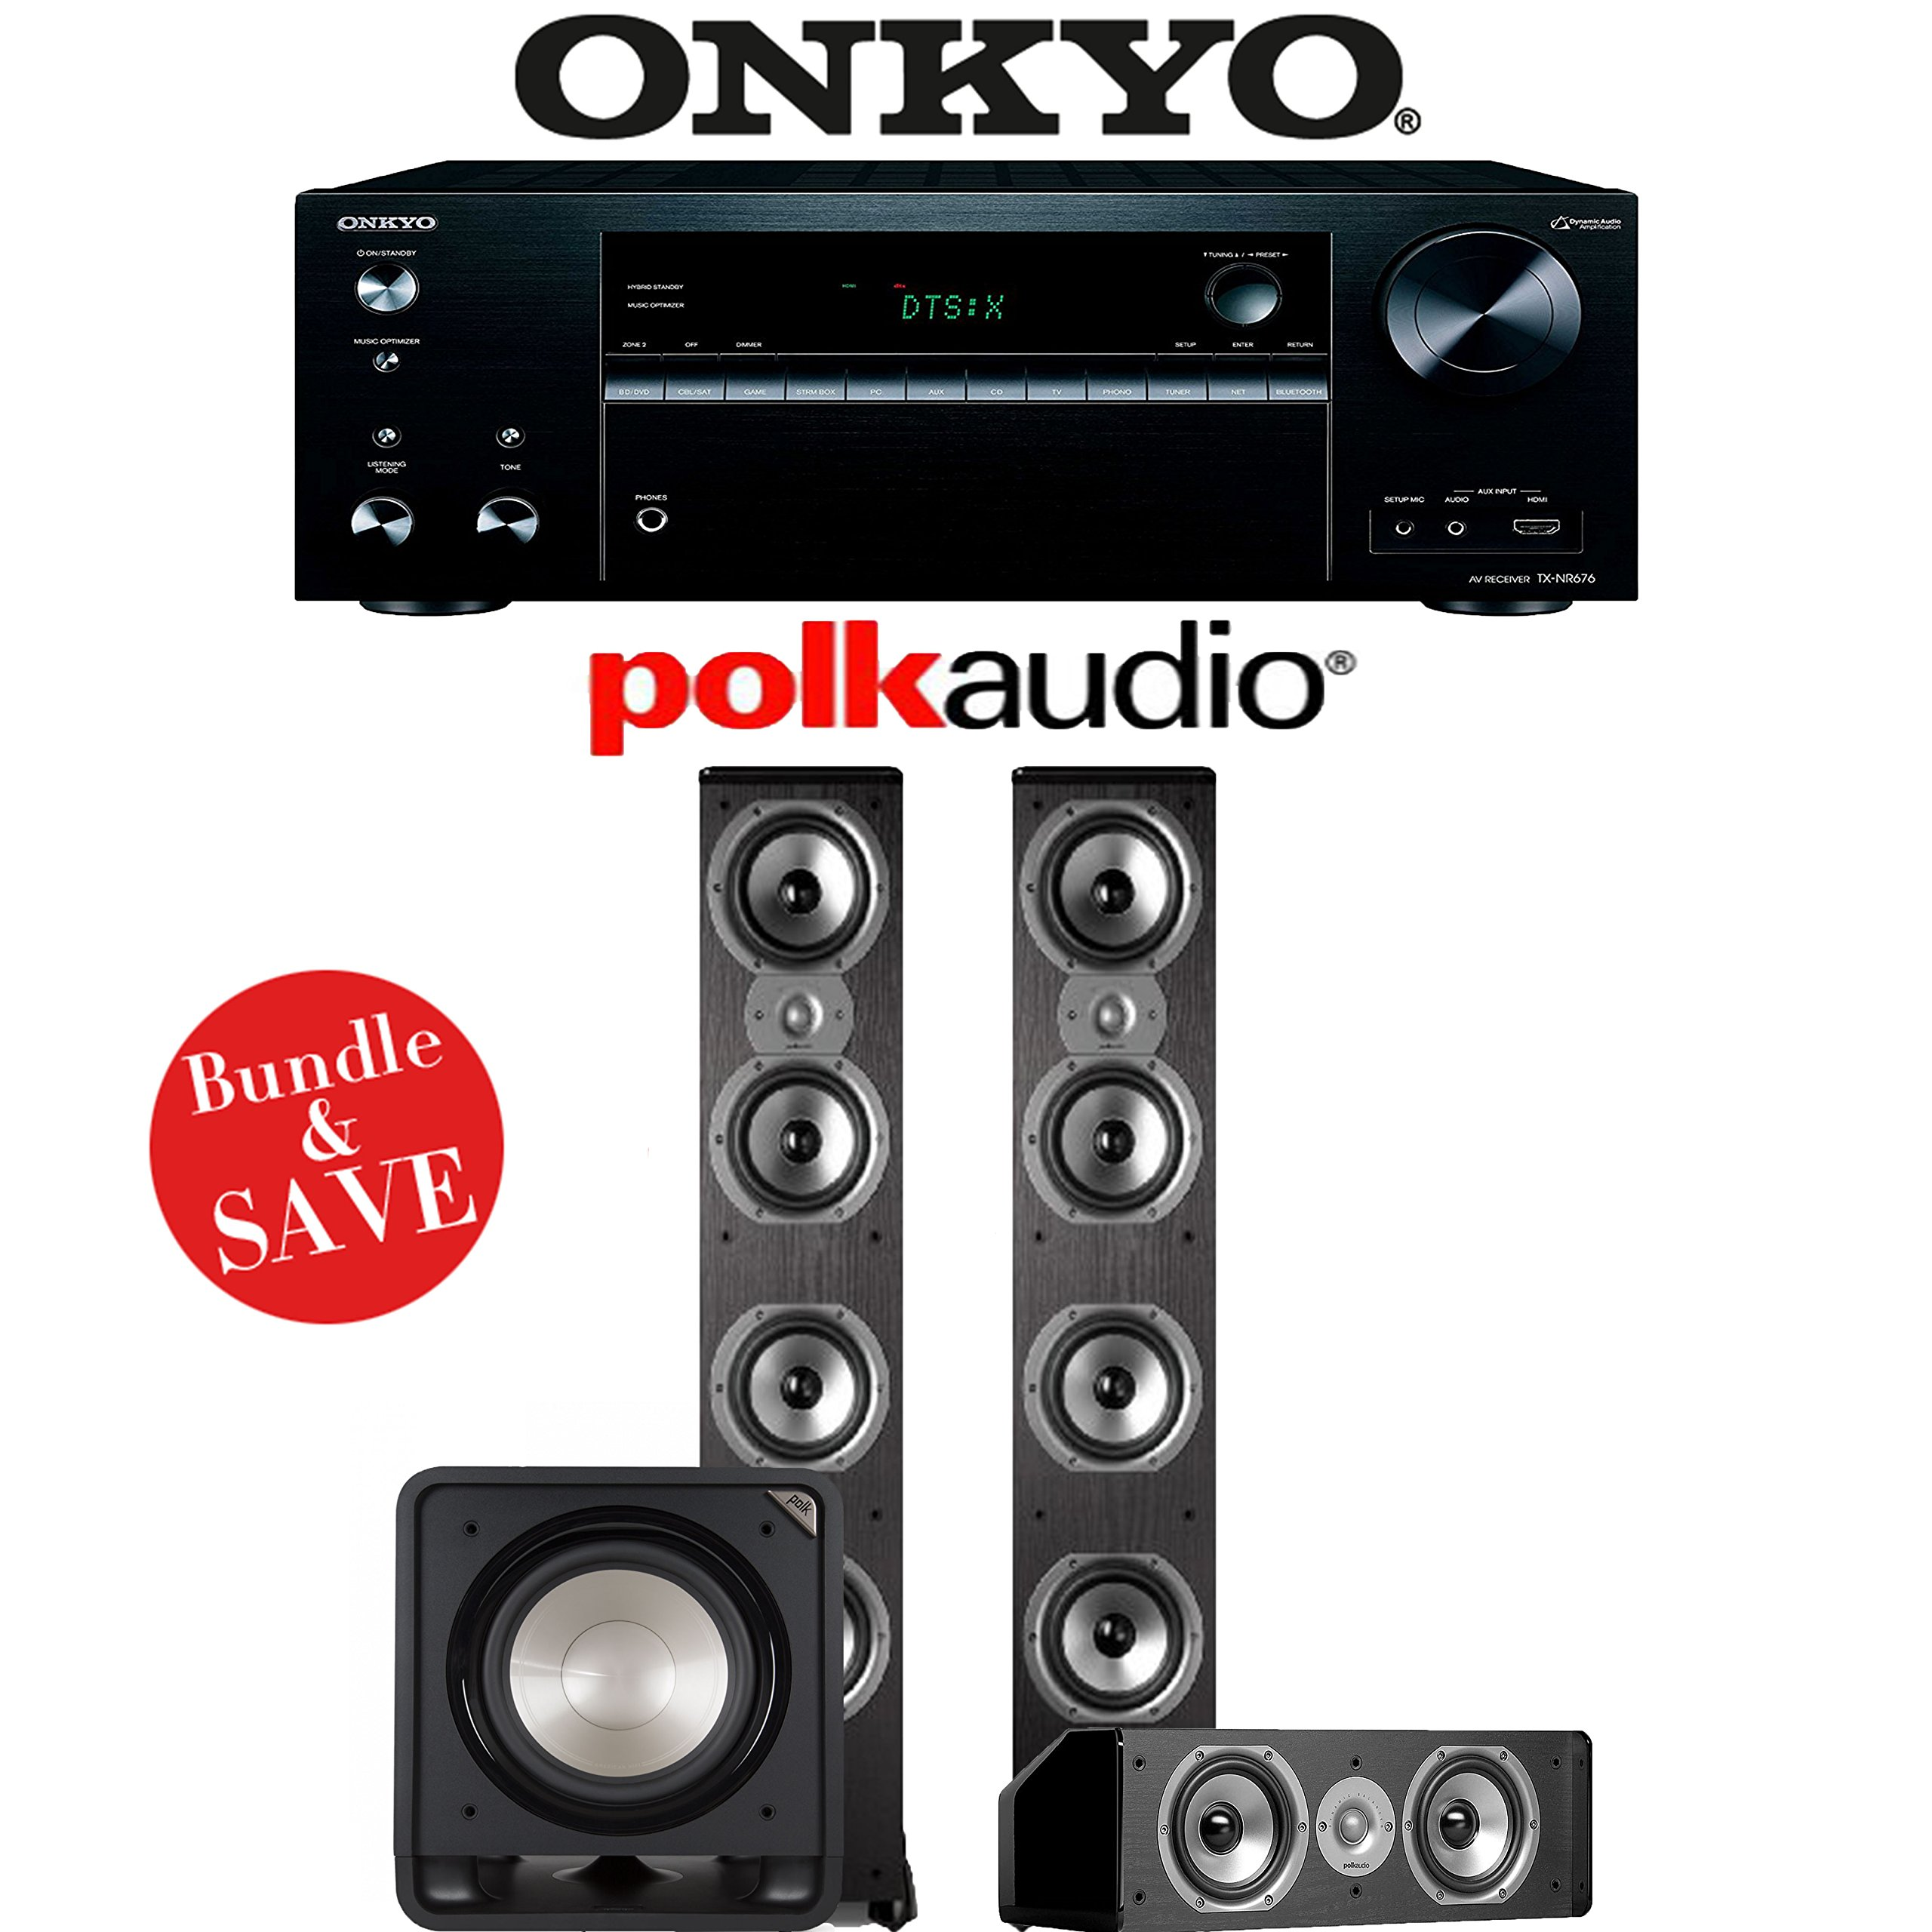 Onkyo TX-NR676 7.2-Channel 4K Network A/V Receiver + Polk Audio TSi 500 + Polk Audio CS10 + Polk Audio HTS12 - 3.1-Ch Home Theater Package by Polk Audio